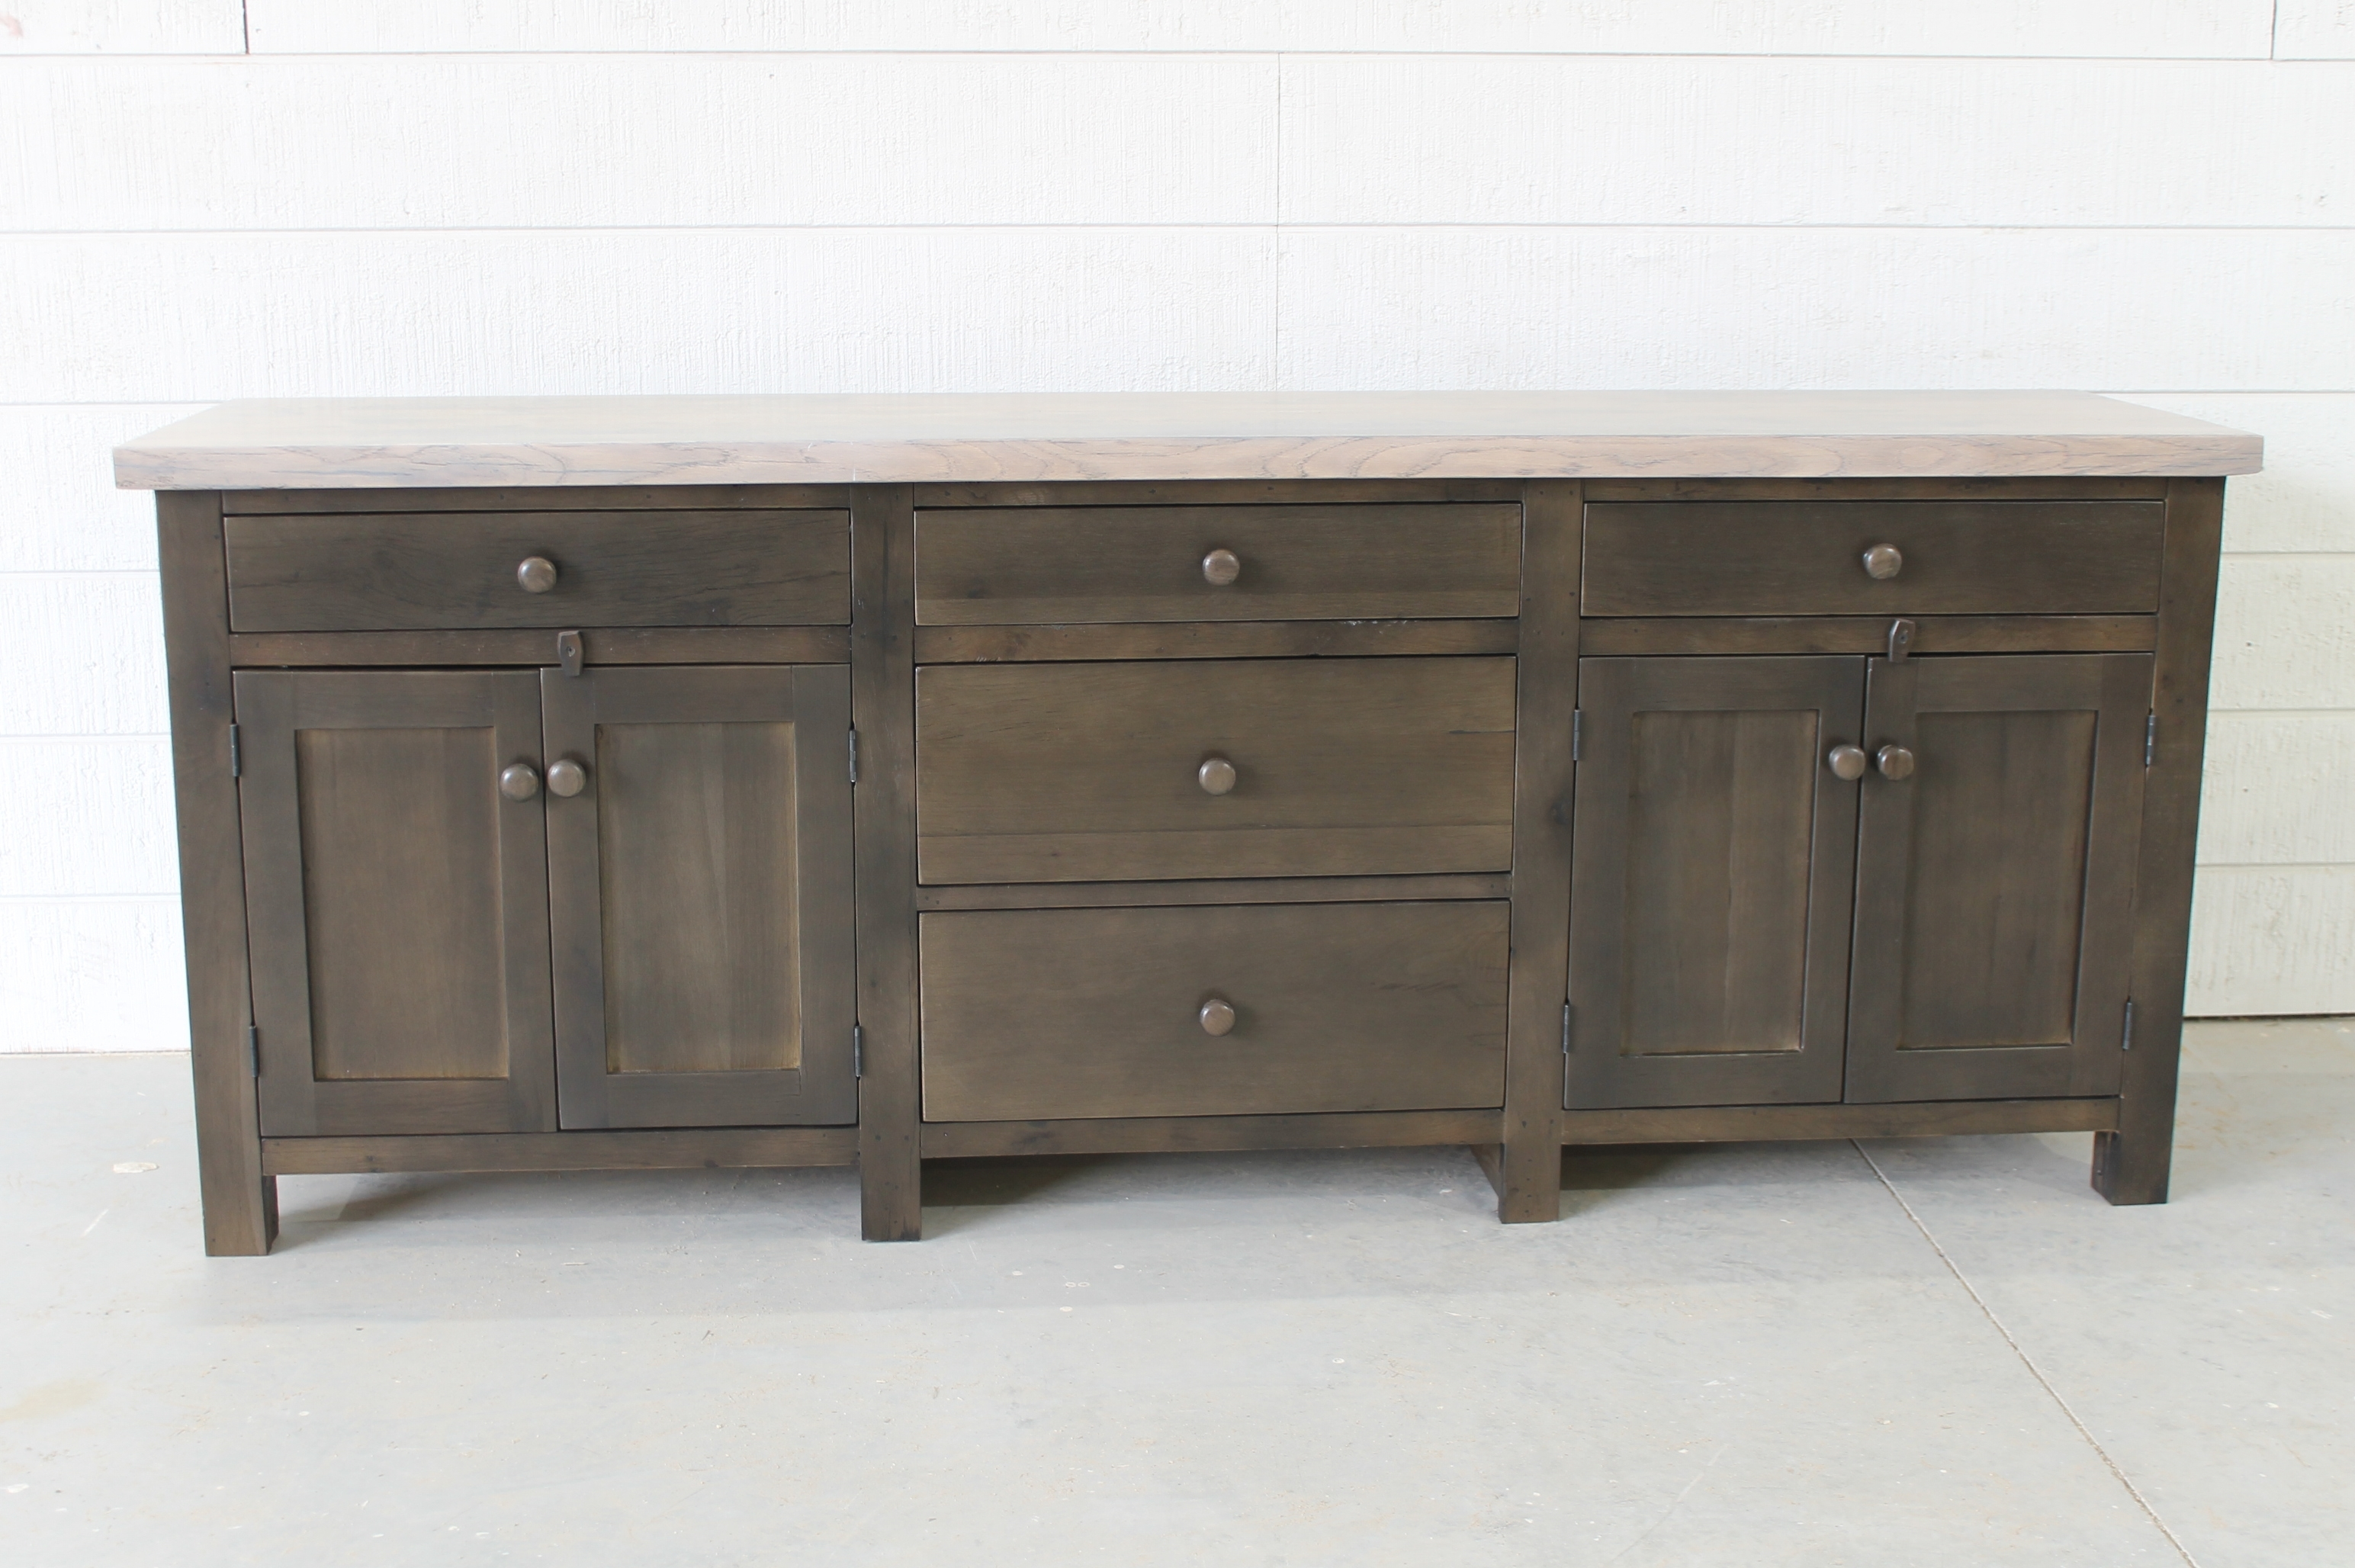 Reclaimed Wood Modern Sideboard. Perfect Marriage Of Old Meets New inside 4 Door Wood Squares Sideboards (Image 26 of 30)